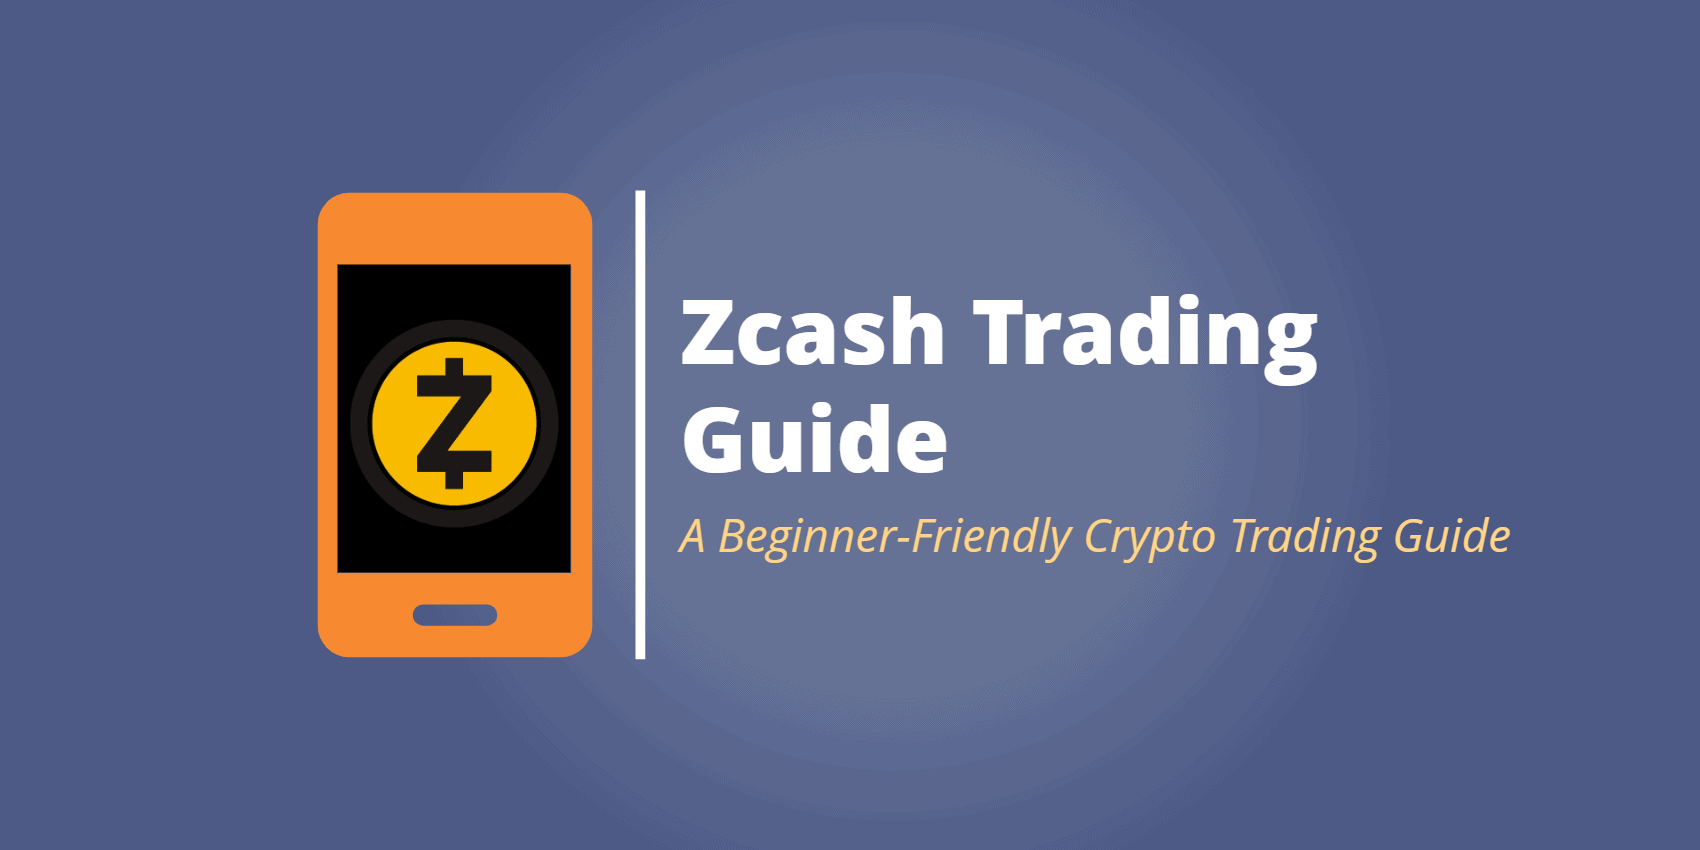 Zcash crypto currency trading bitcoins wikileaks news